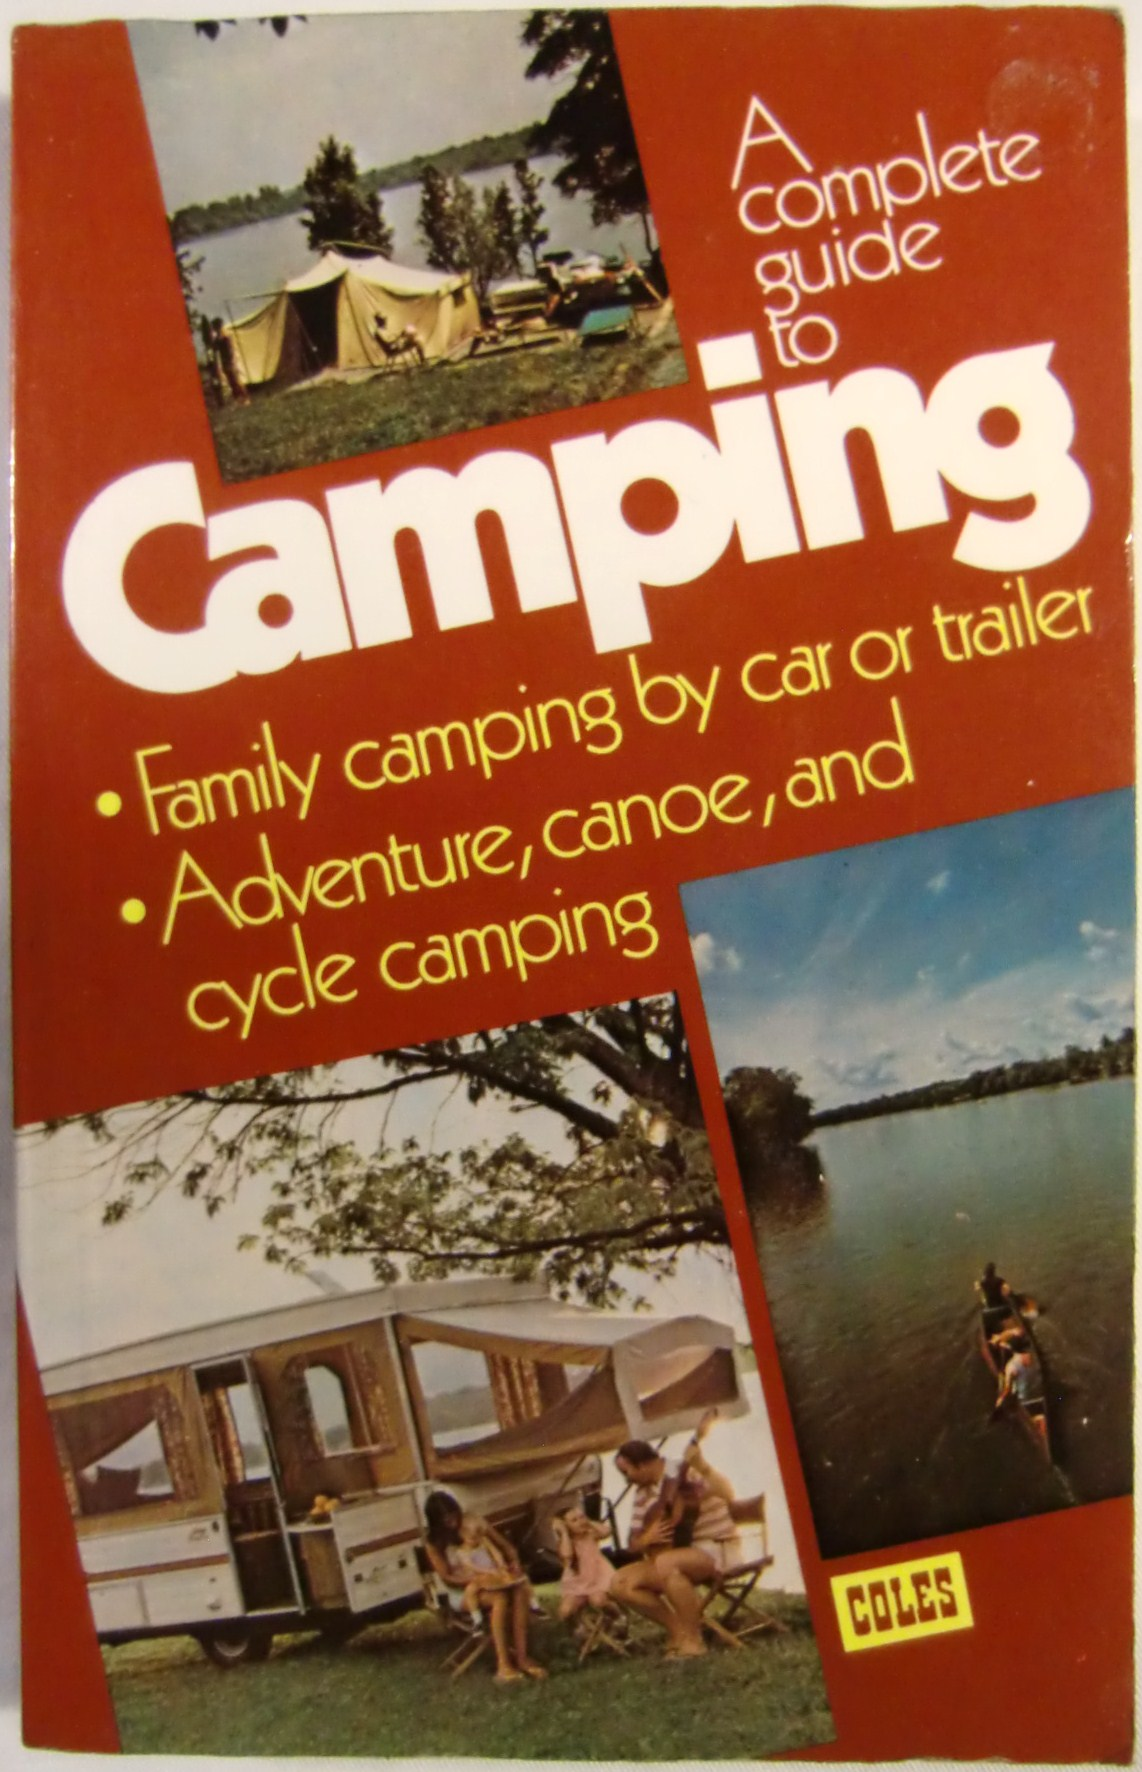 A complete guide to Camping